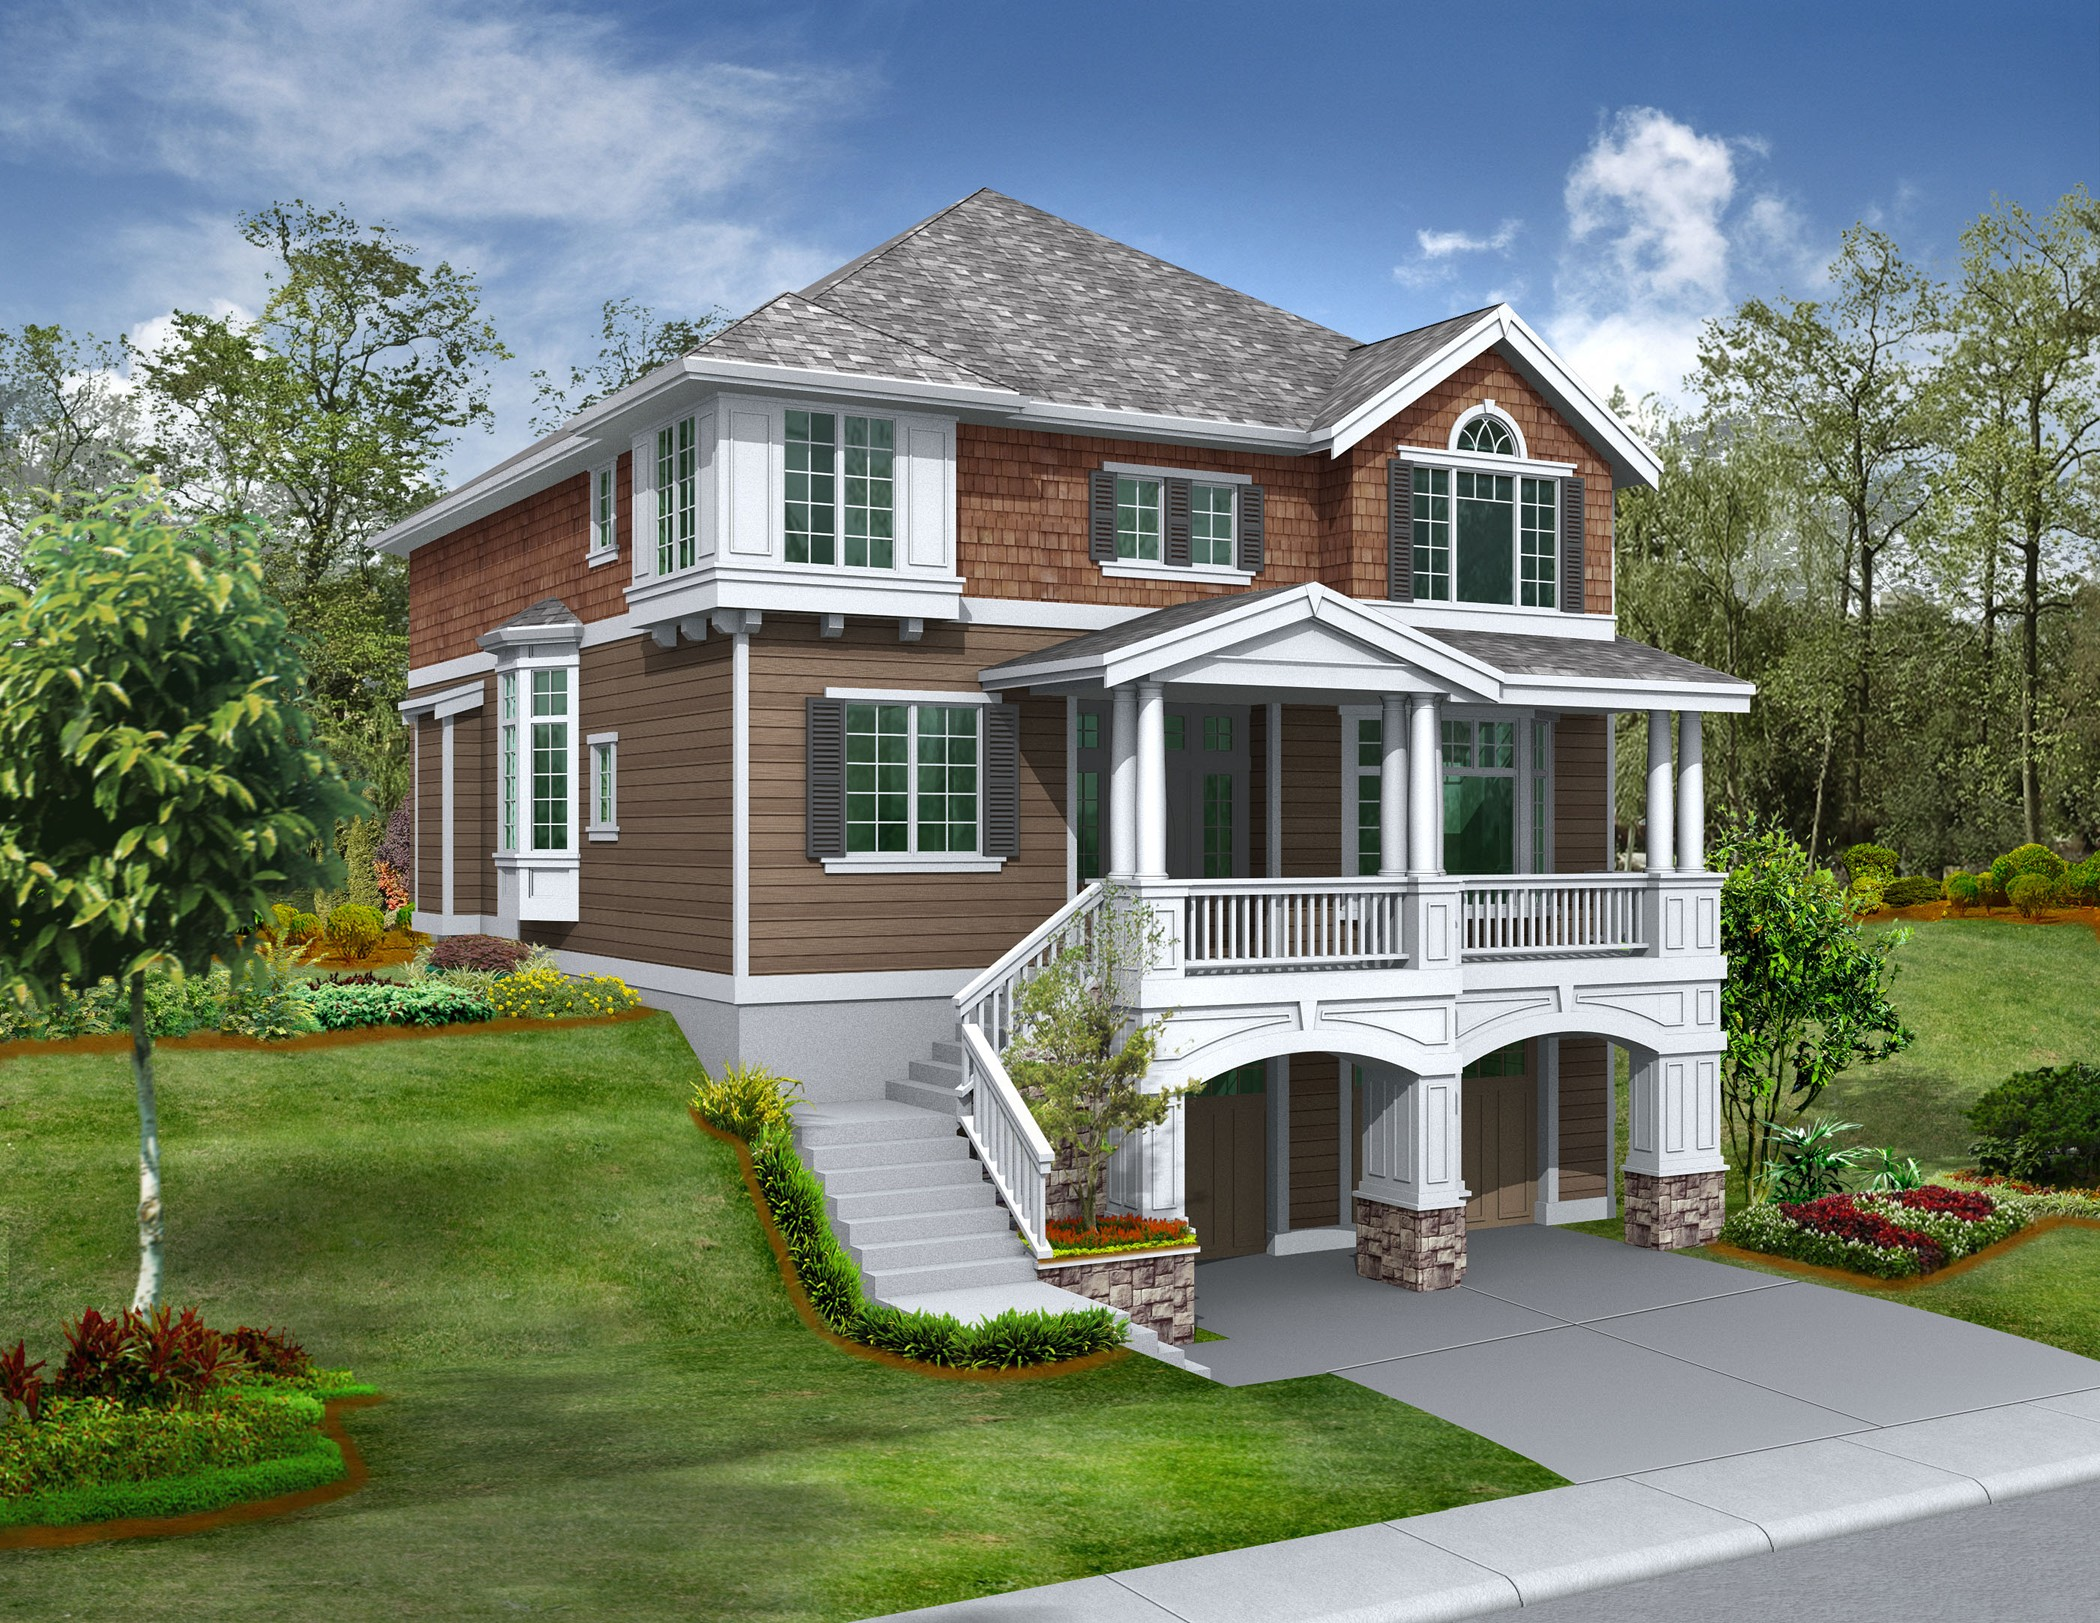 House plans for narrow sloping lots home design and style Building on a lot